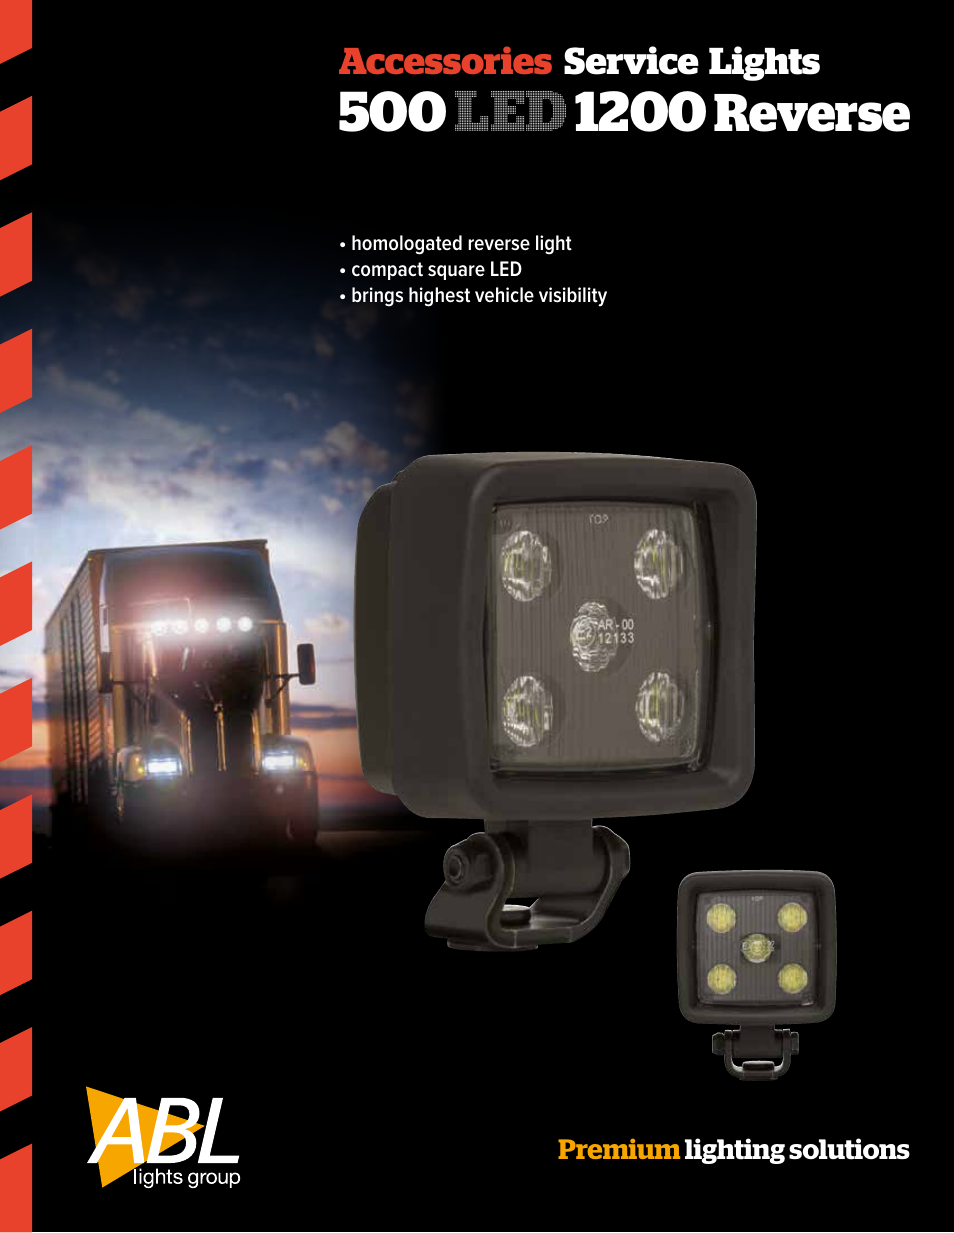 Abl Lights Group 500 Led 1200 Reverse User Manual 2 Pages